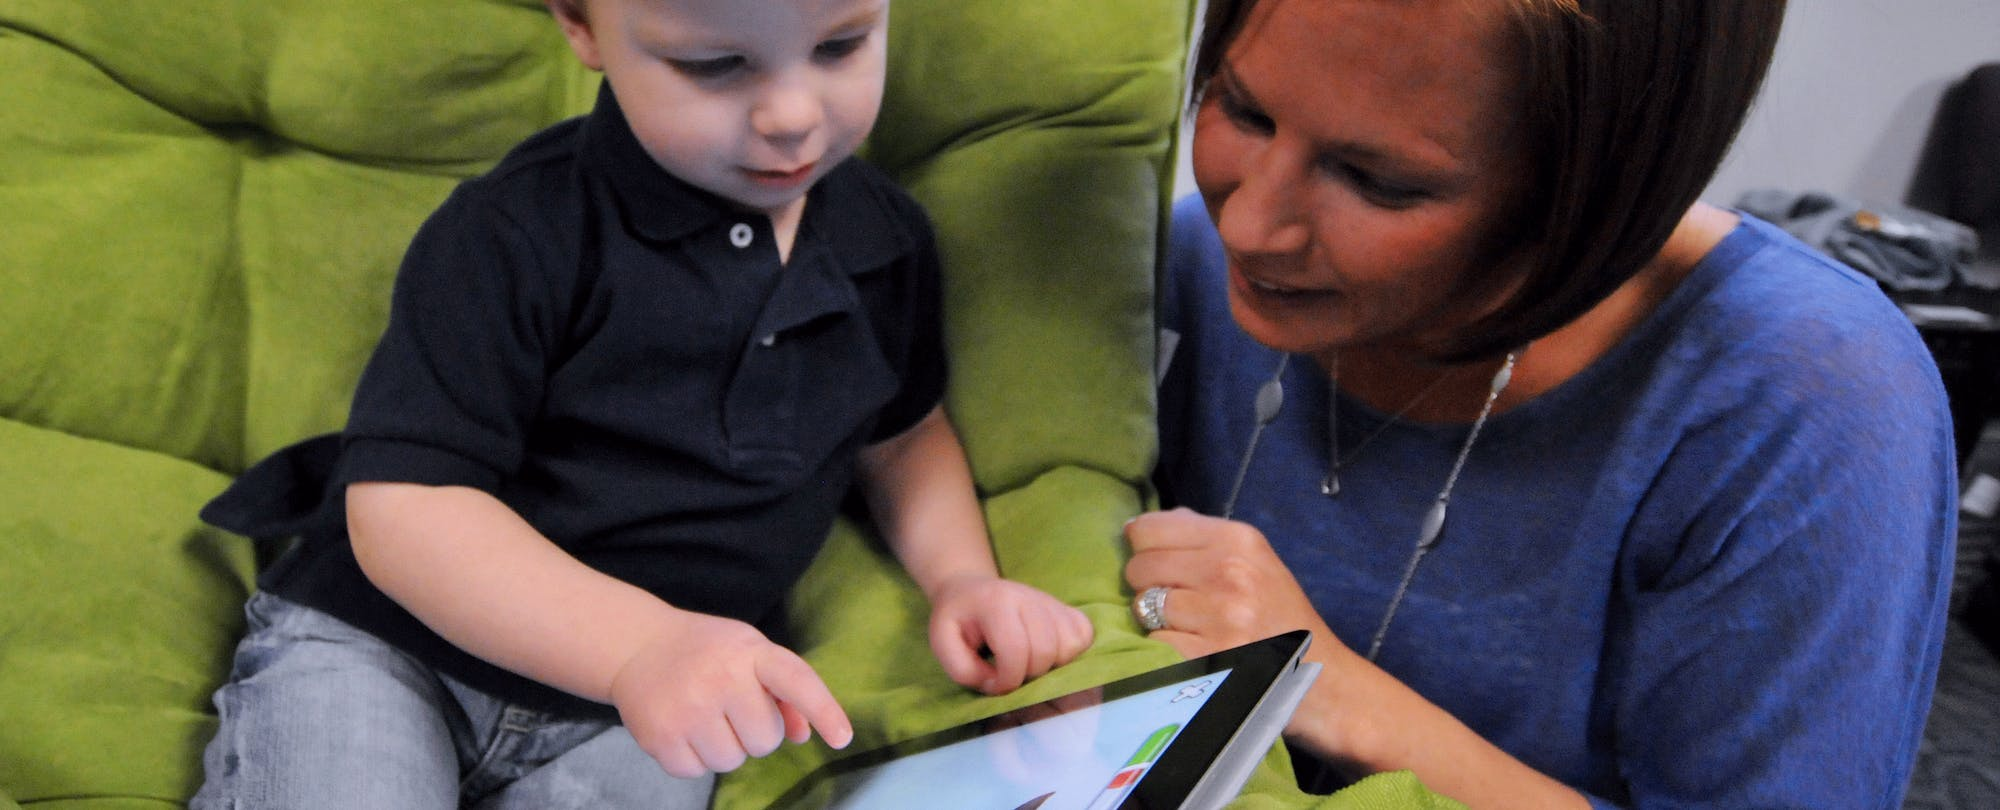 Twelve Days of Devices: Using Technology with Kids Over the Holidays